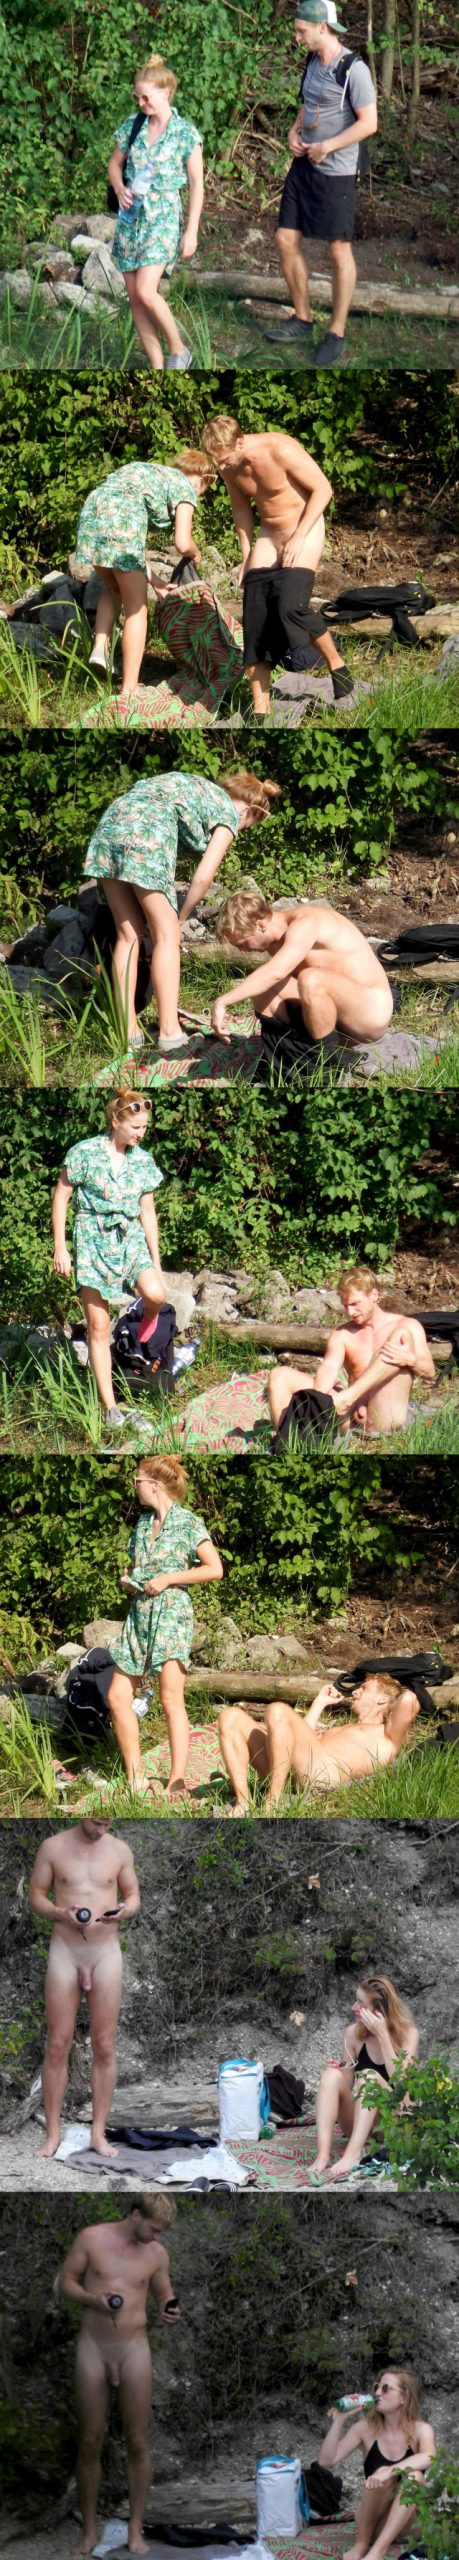 straight nudist man caught at the river